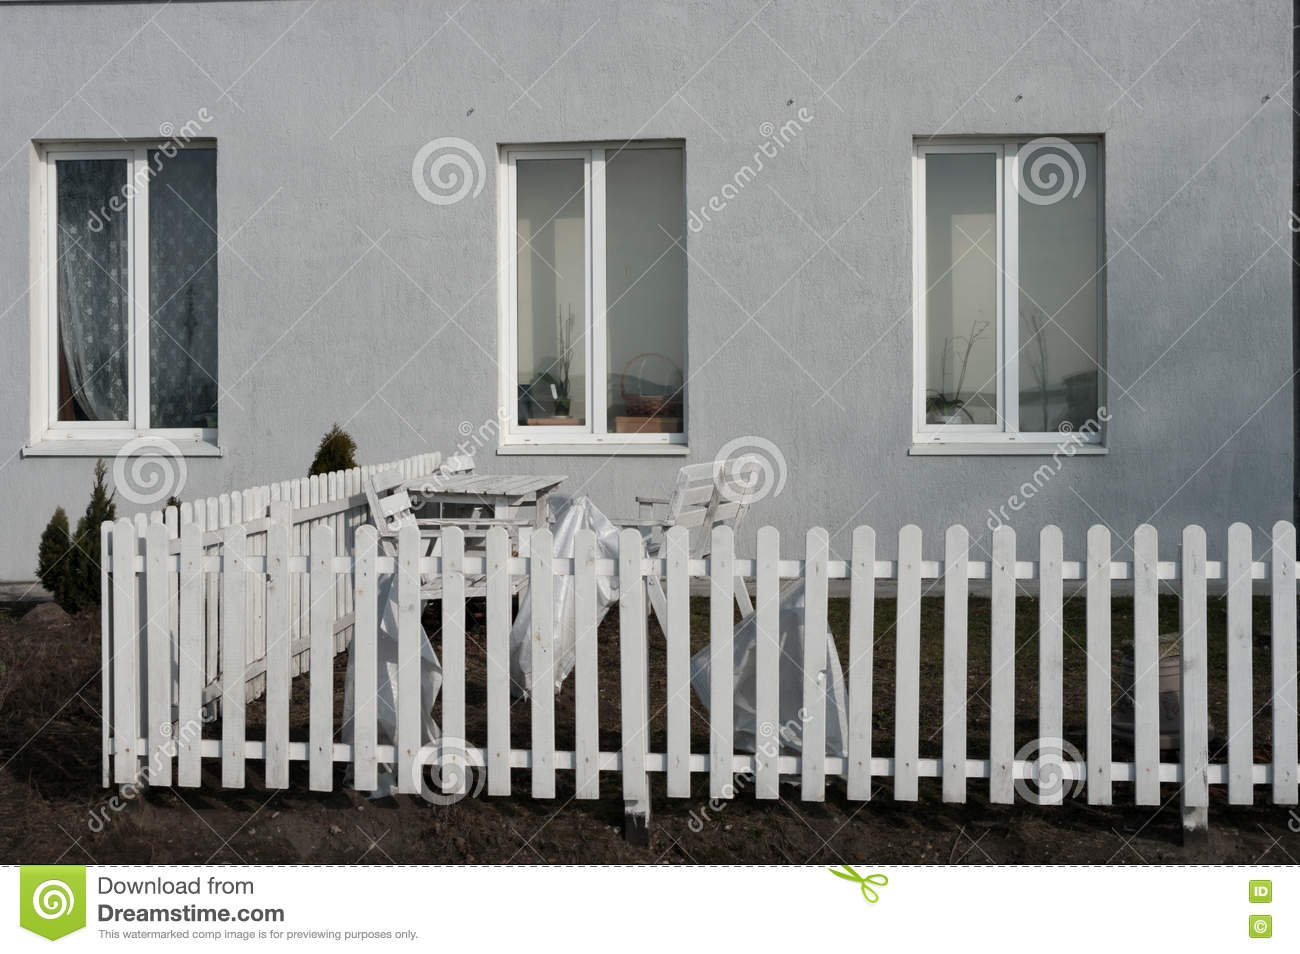 Windows, a white picket fence and garden furniture near the house